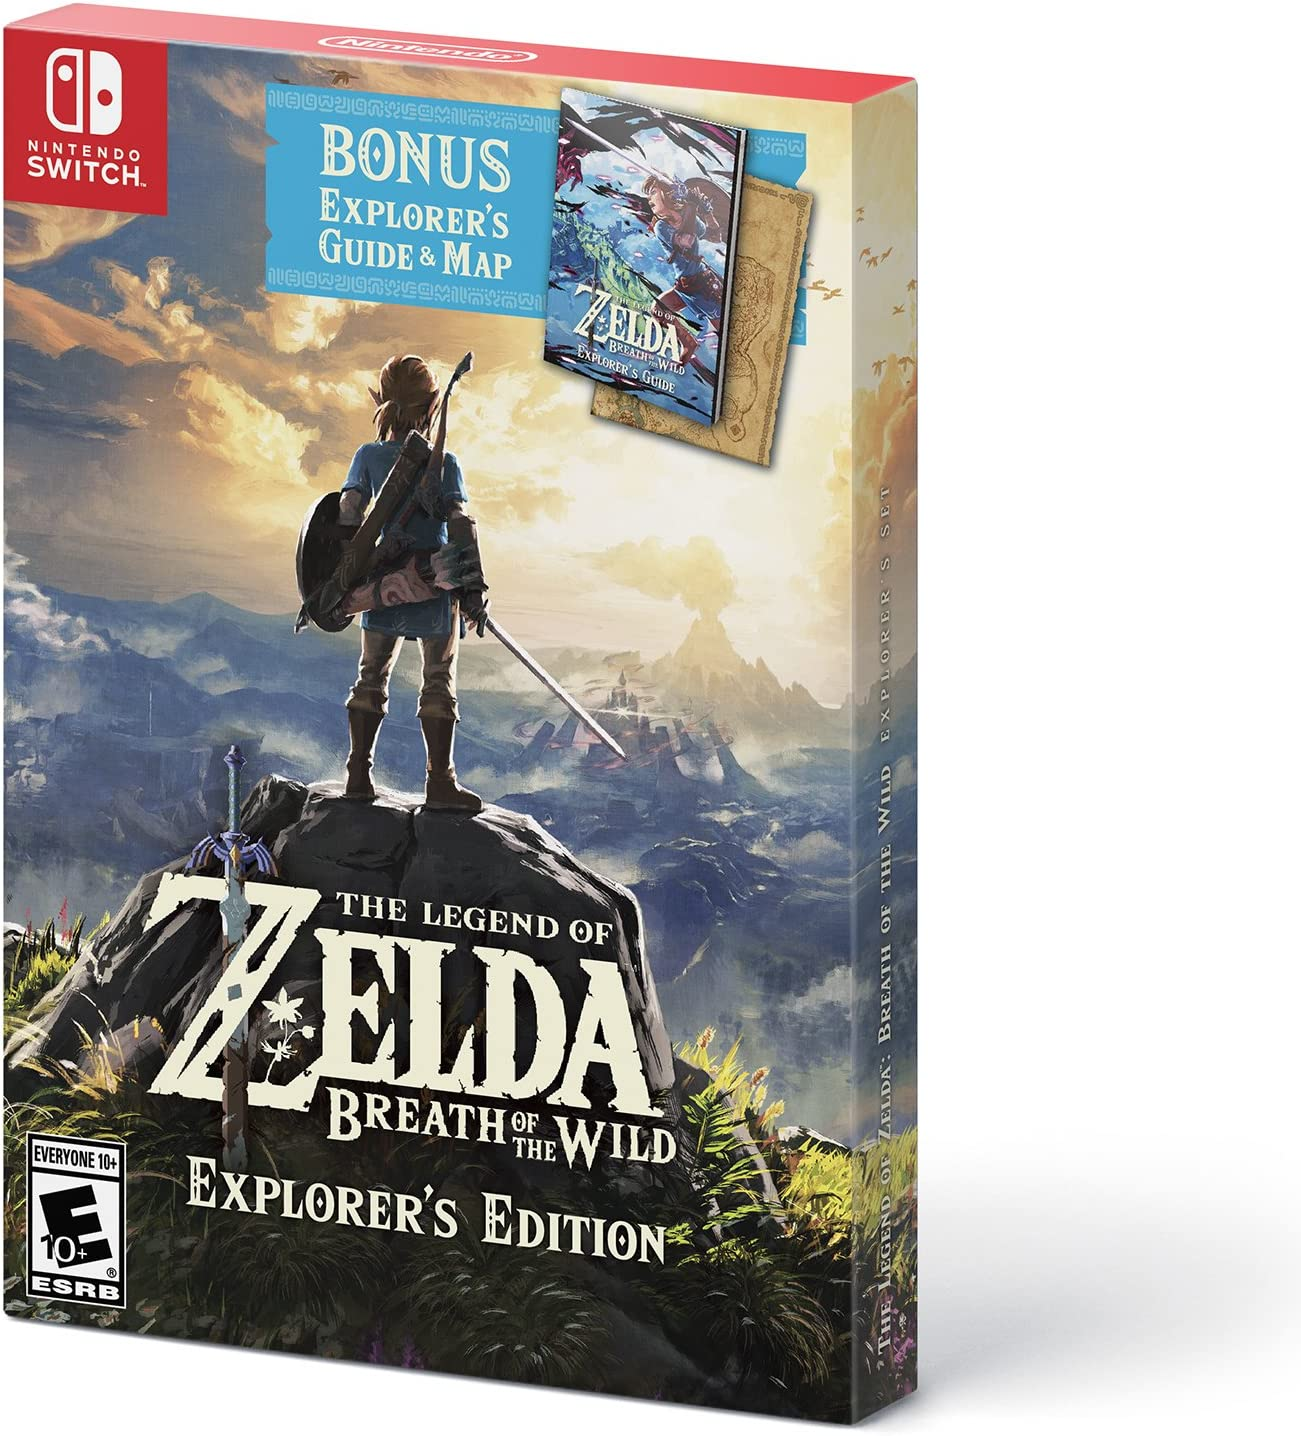 The Legend of Zelda: Breath of the Wild - Explorer's Edition